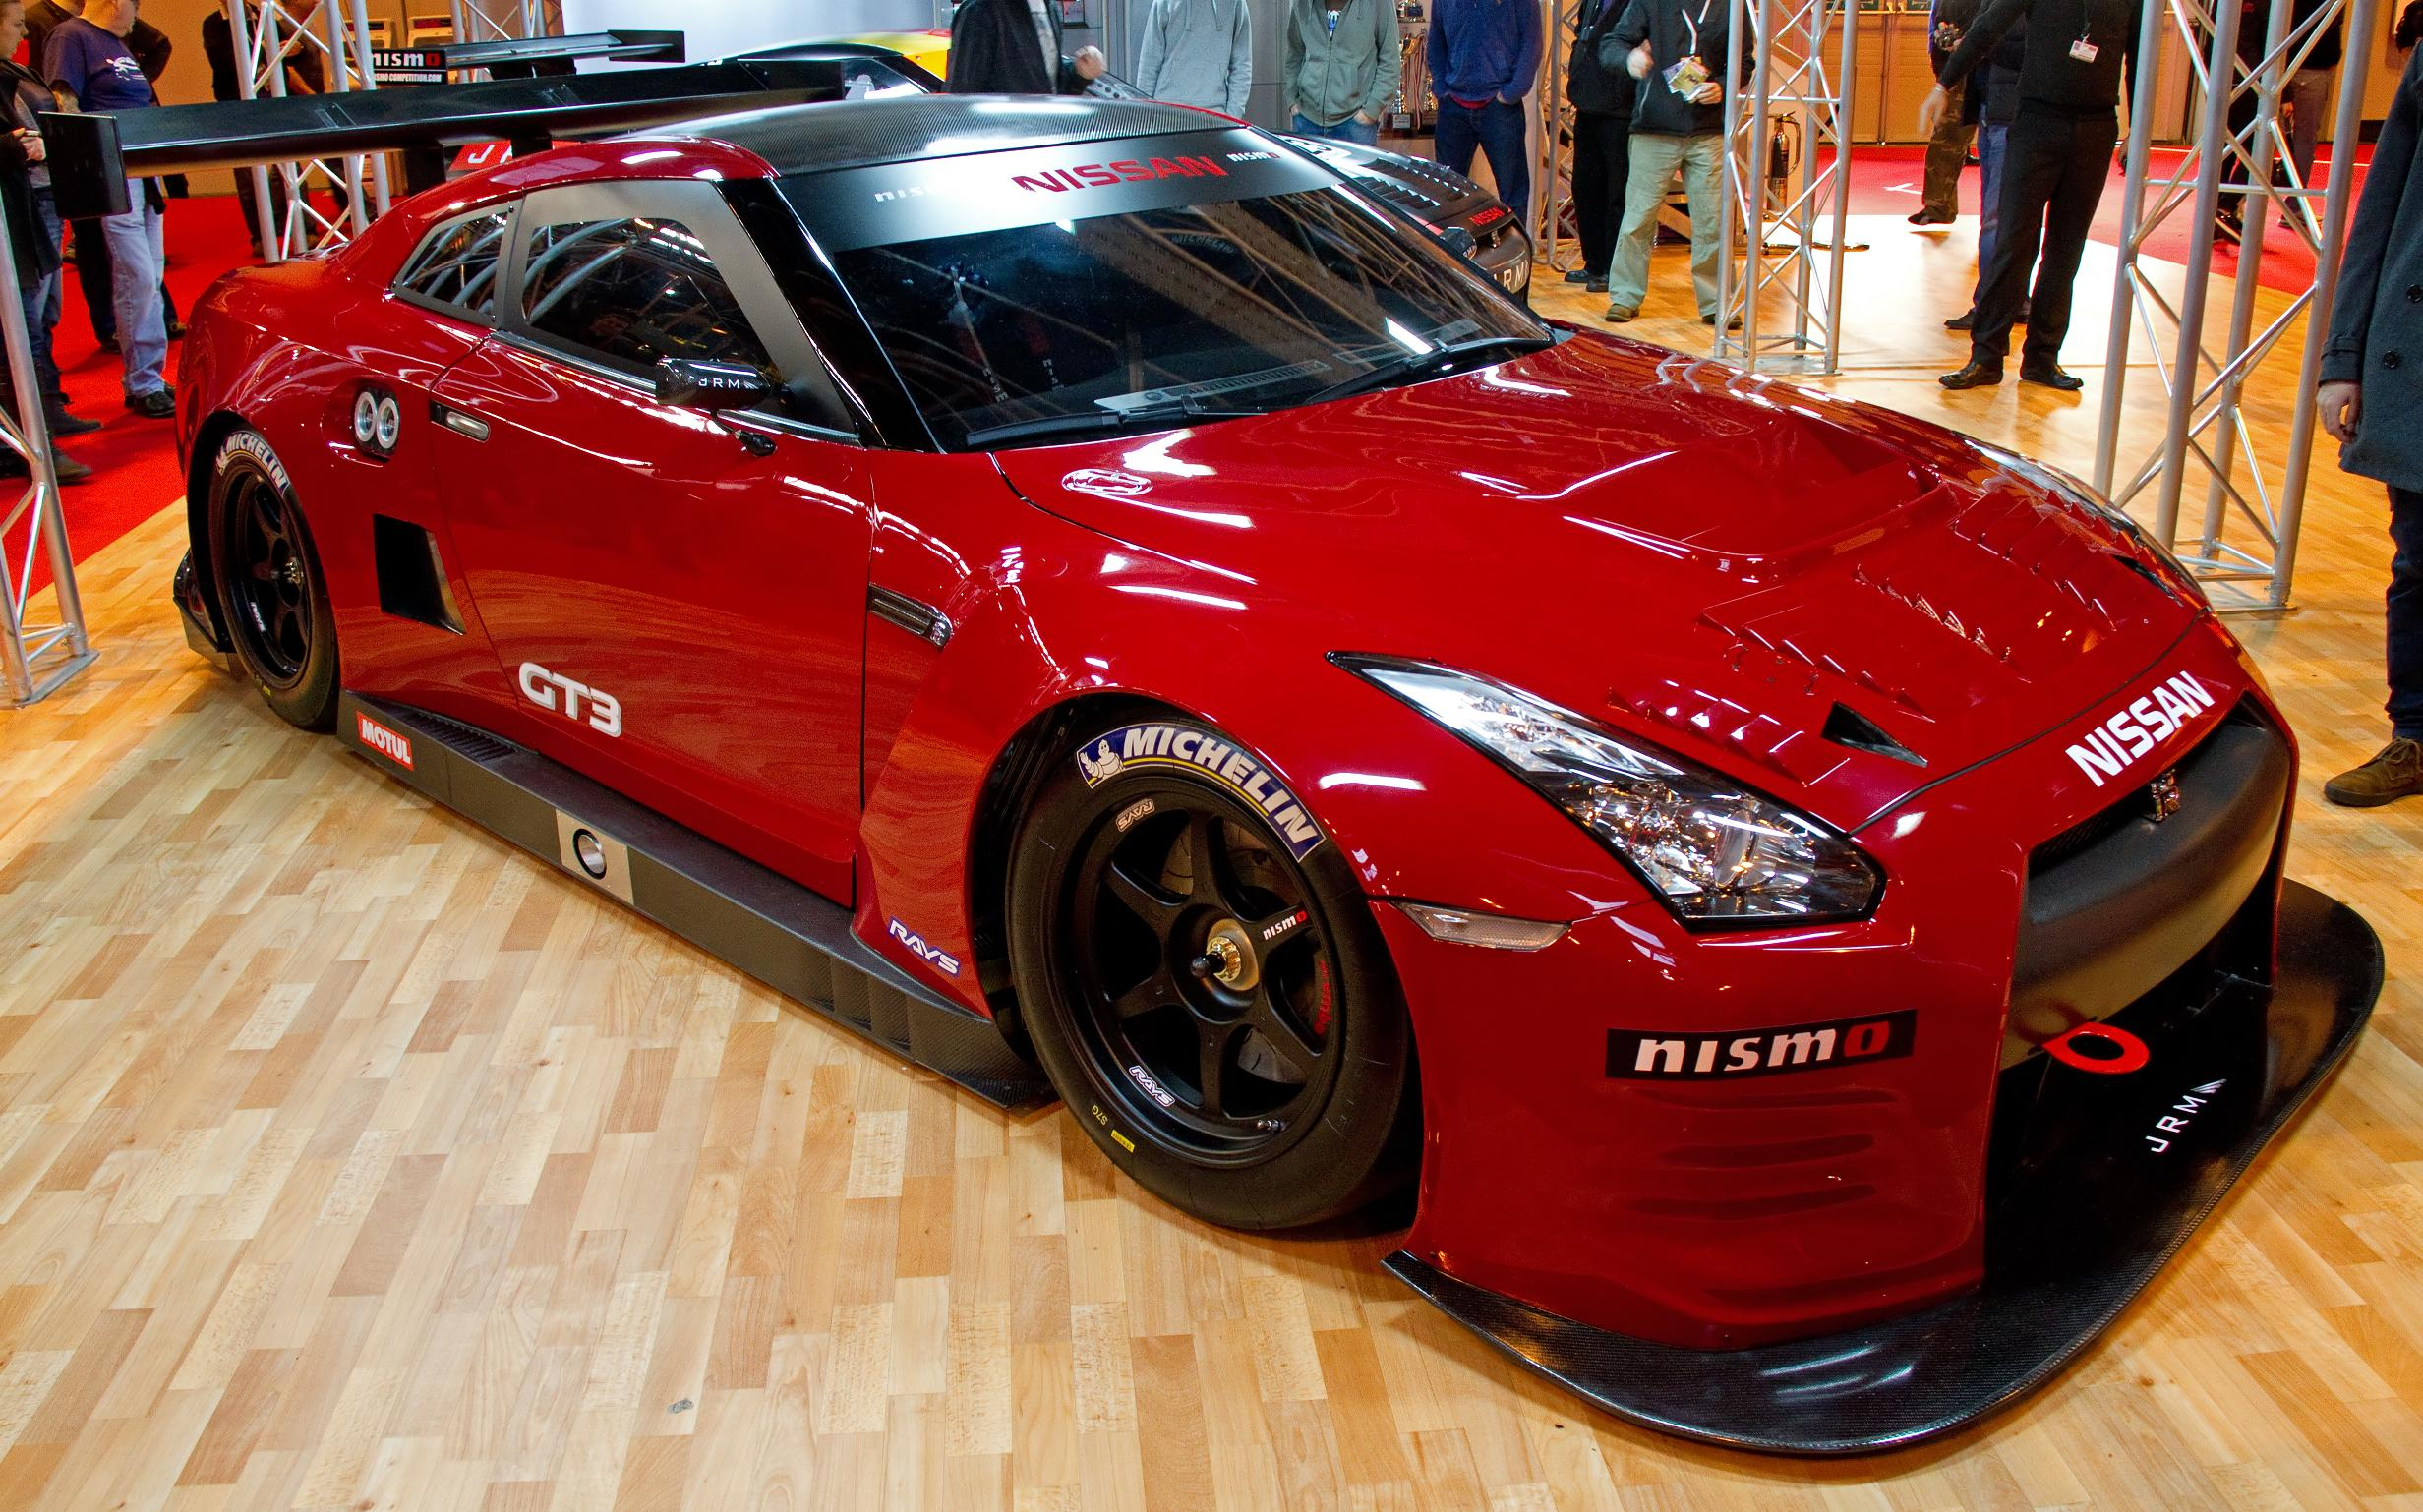 Used Nissan Gt-r for Sale Unique File Nissan Gt R Gt3 Wikimedia Mons